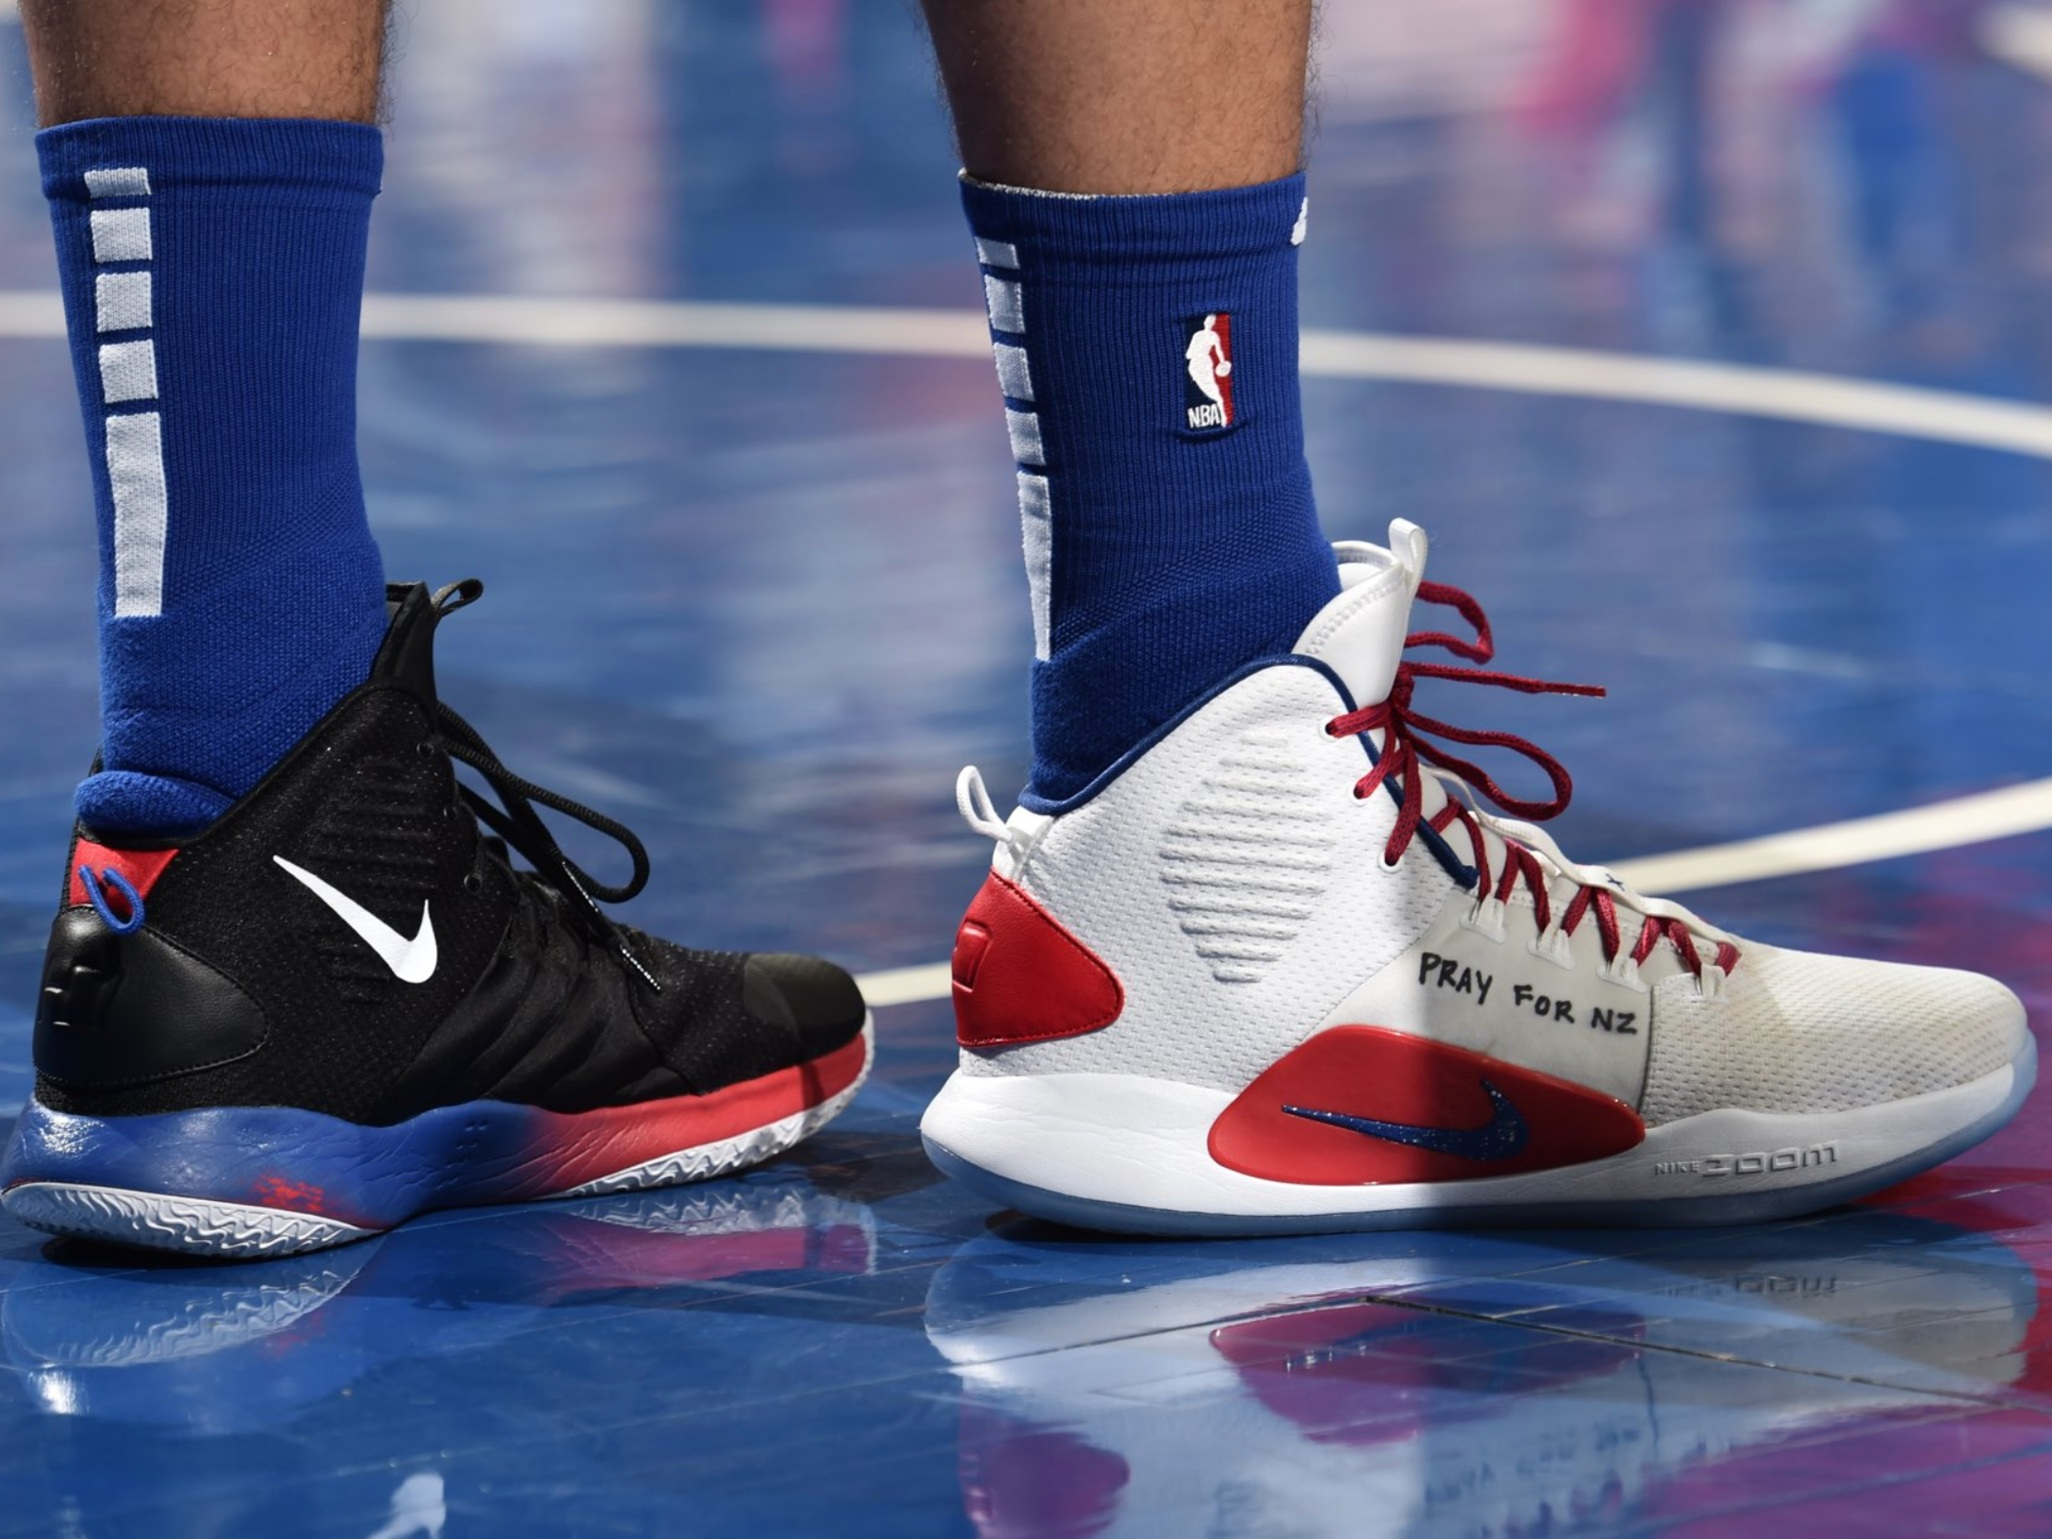 Ben Simmons Wears Nike Hyperdunk - Sacramento Kings vs. Philadelphia 76ers | March 15, 201918 Points5 Assists2 Rebounds1 Steal8-12 Shooting